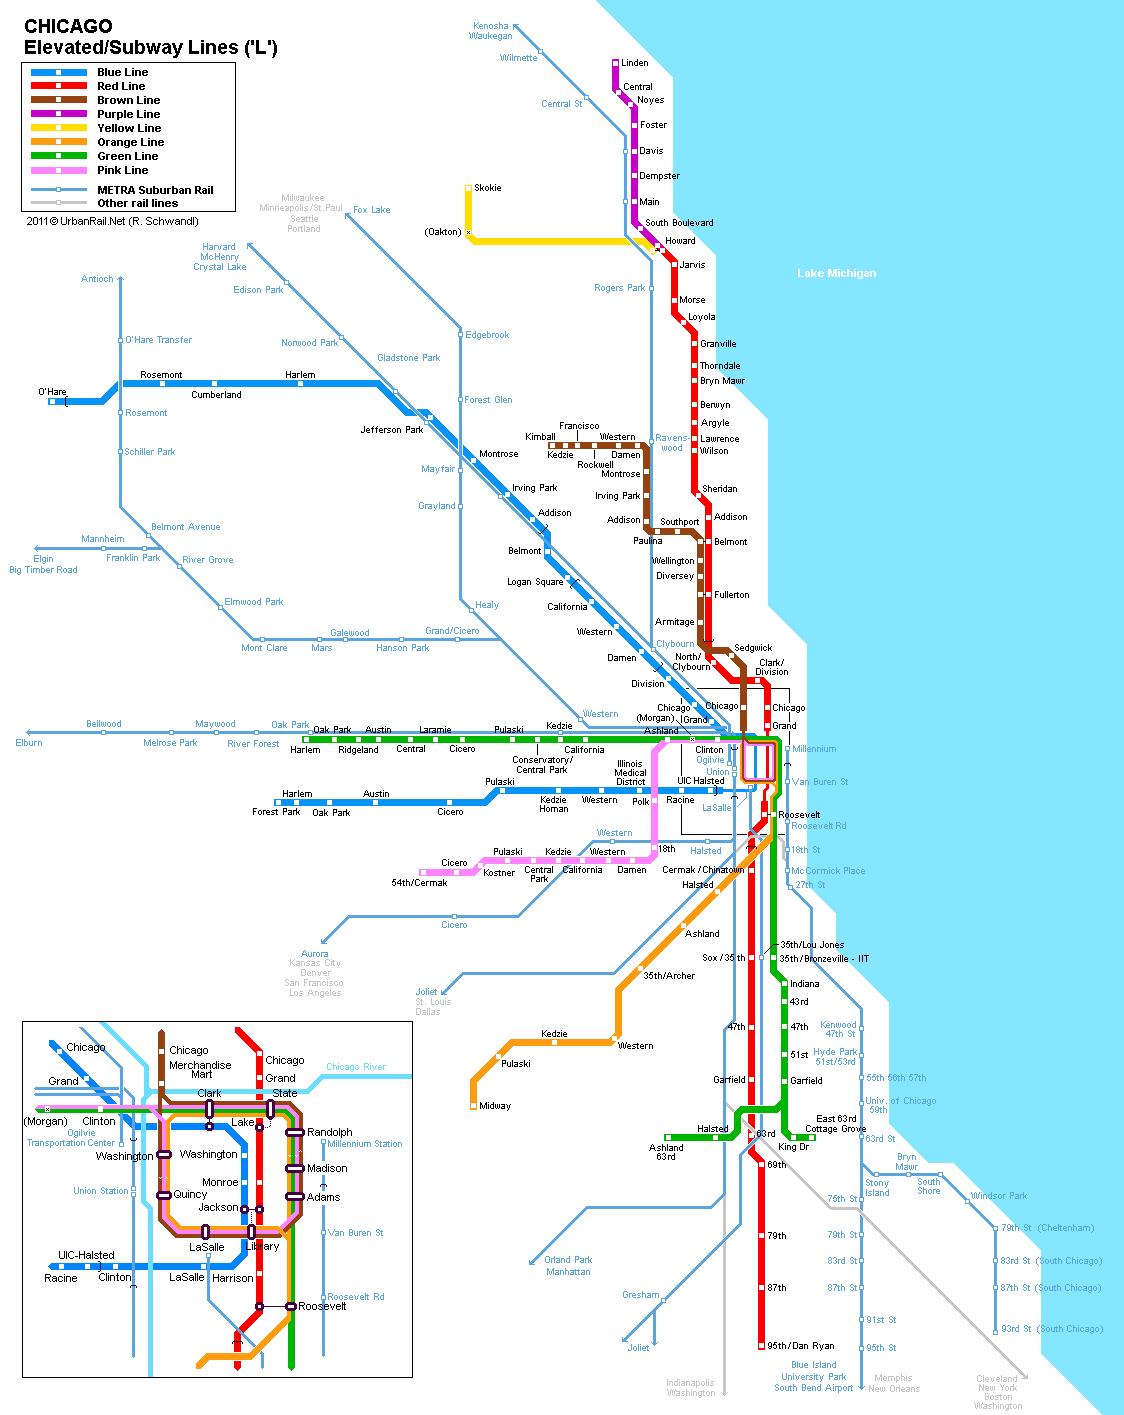 Subway Map Pdf Chicago.Chicago Subway Map For Download Metro In Chicago High Resolution